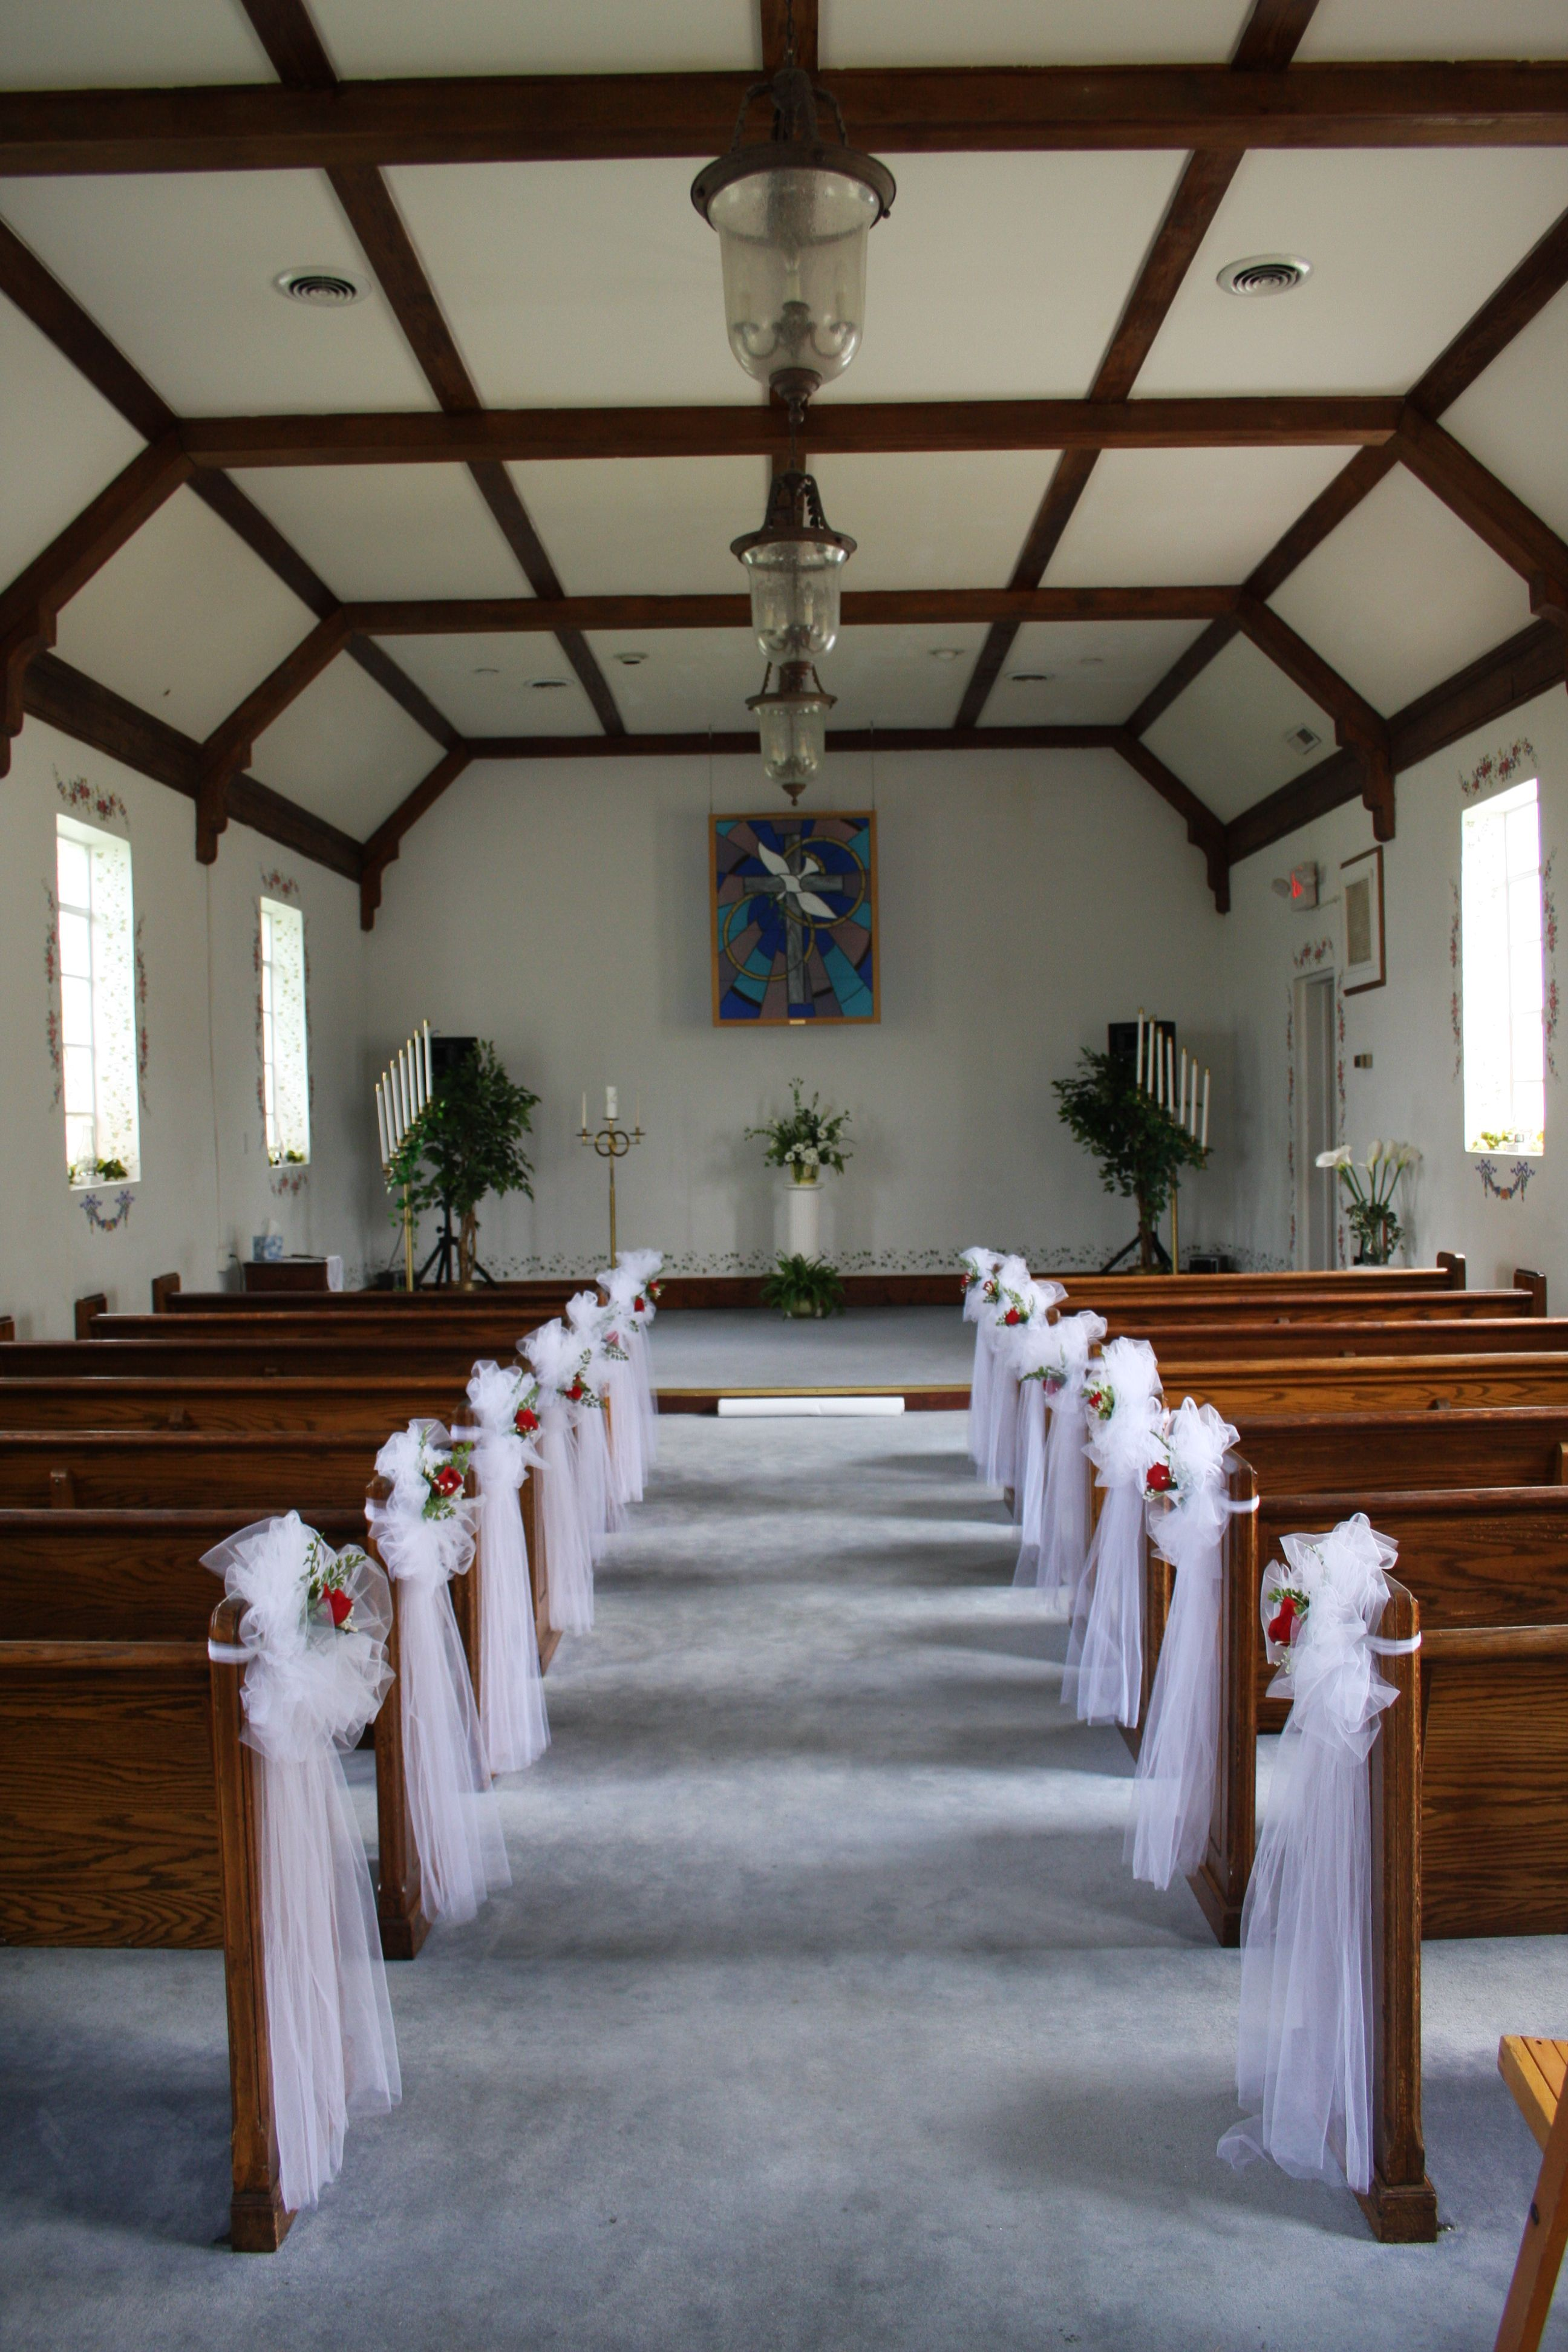 See Inside The White Dove Chapel White Doves Vintage Eclectic Celebration Of Life